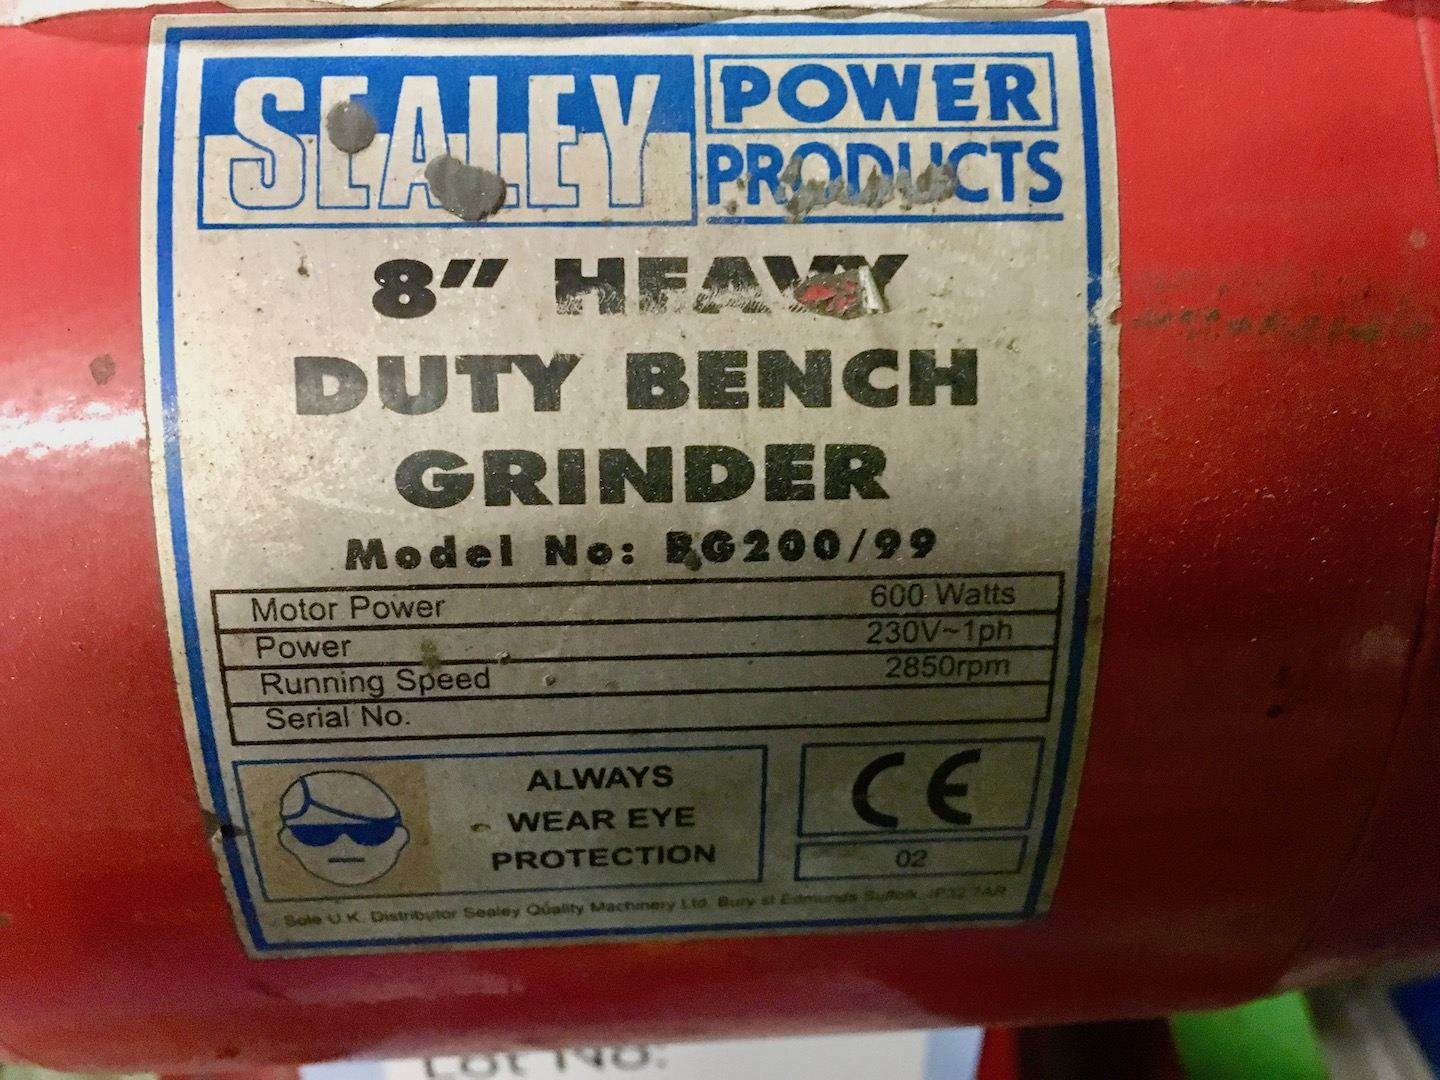 Sealey Bg200 99 8 Quot Heavy Duty Double Ended Bench Grinder